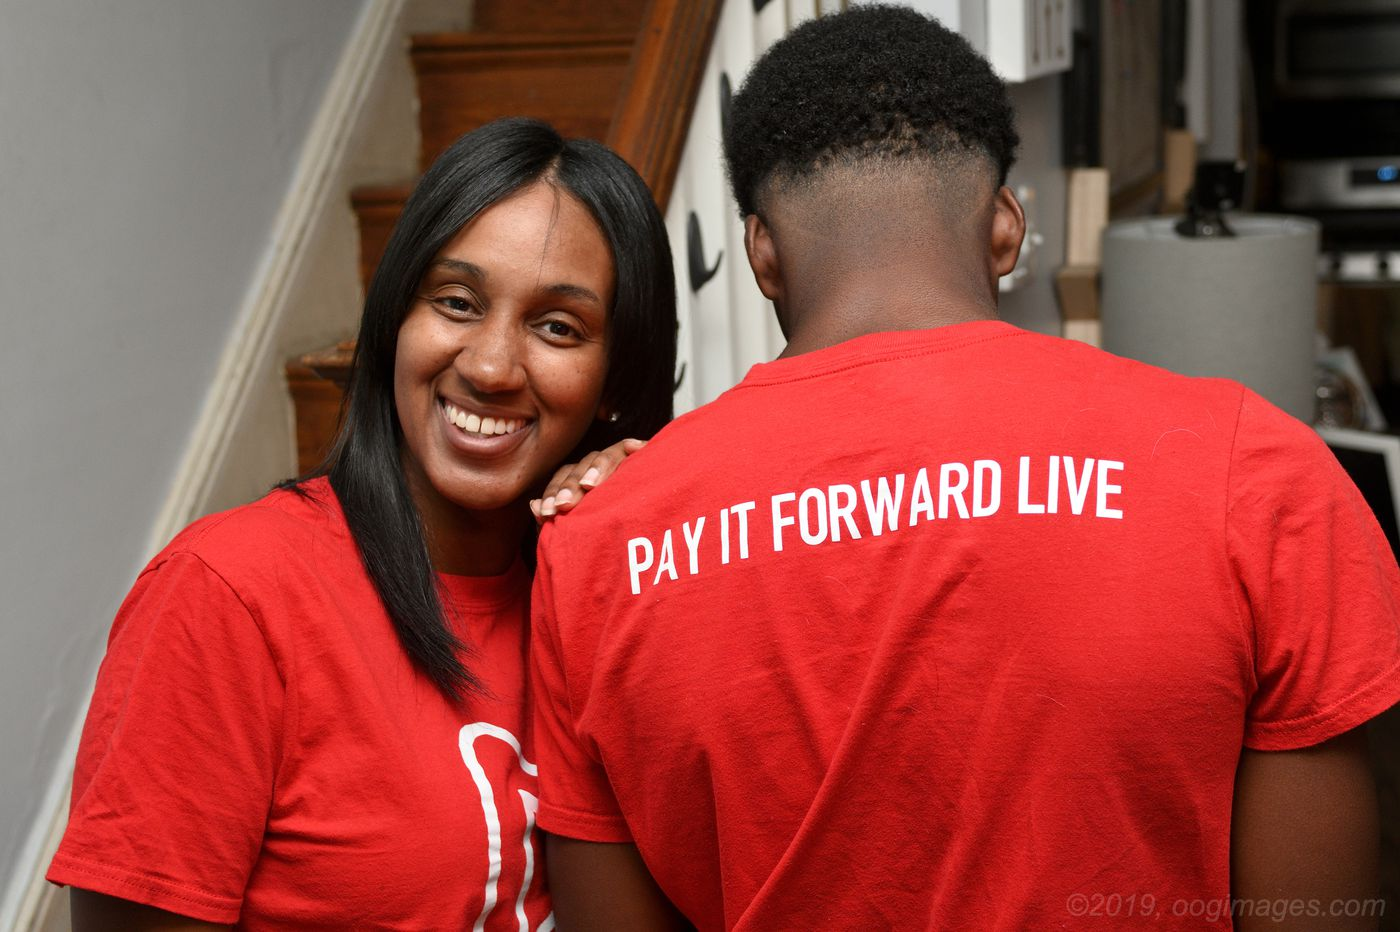 Inspired by her teenage son, a Philly mother is betting on technology to make volunteering fun